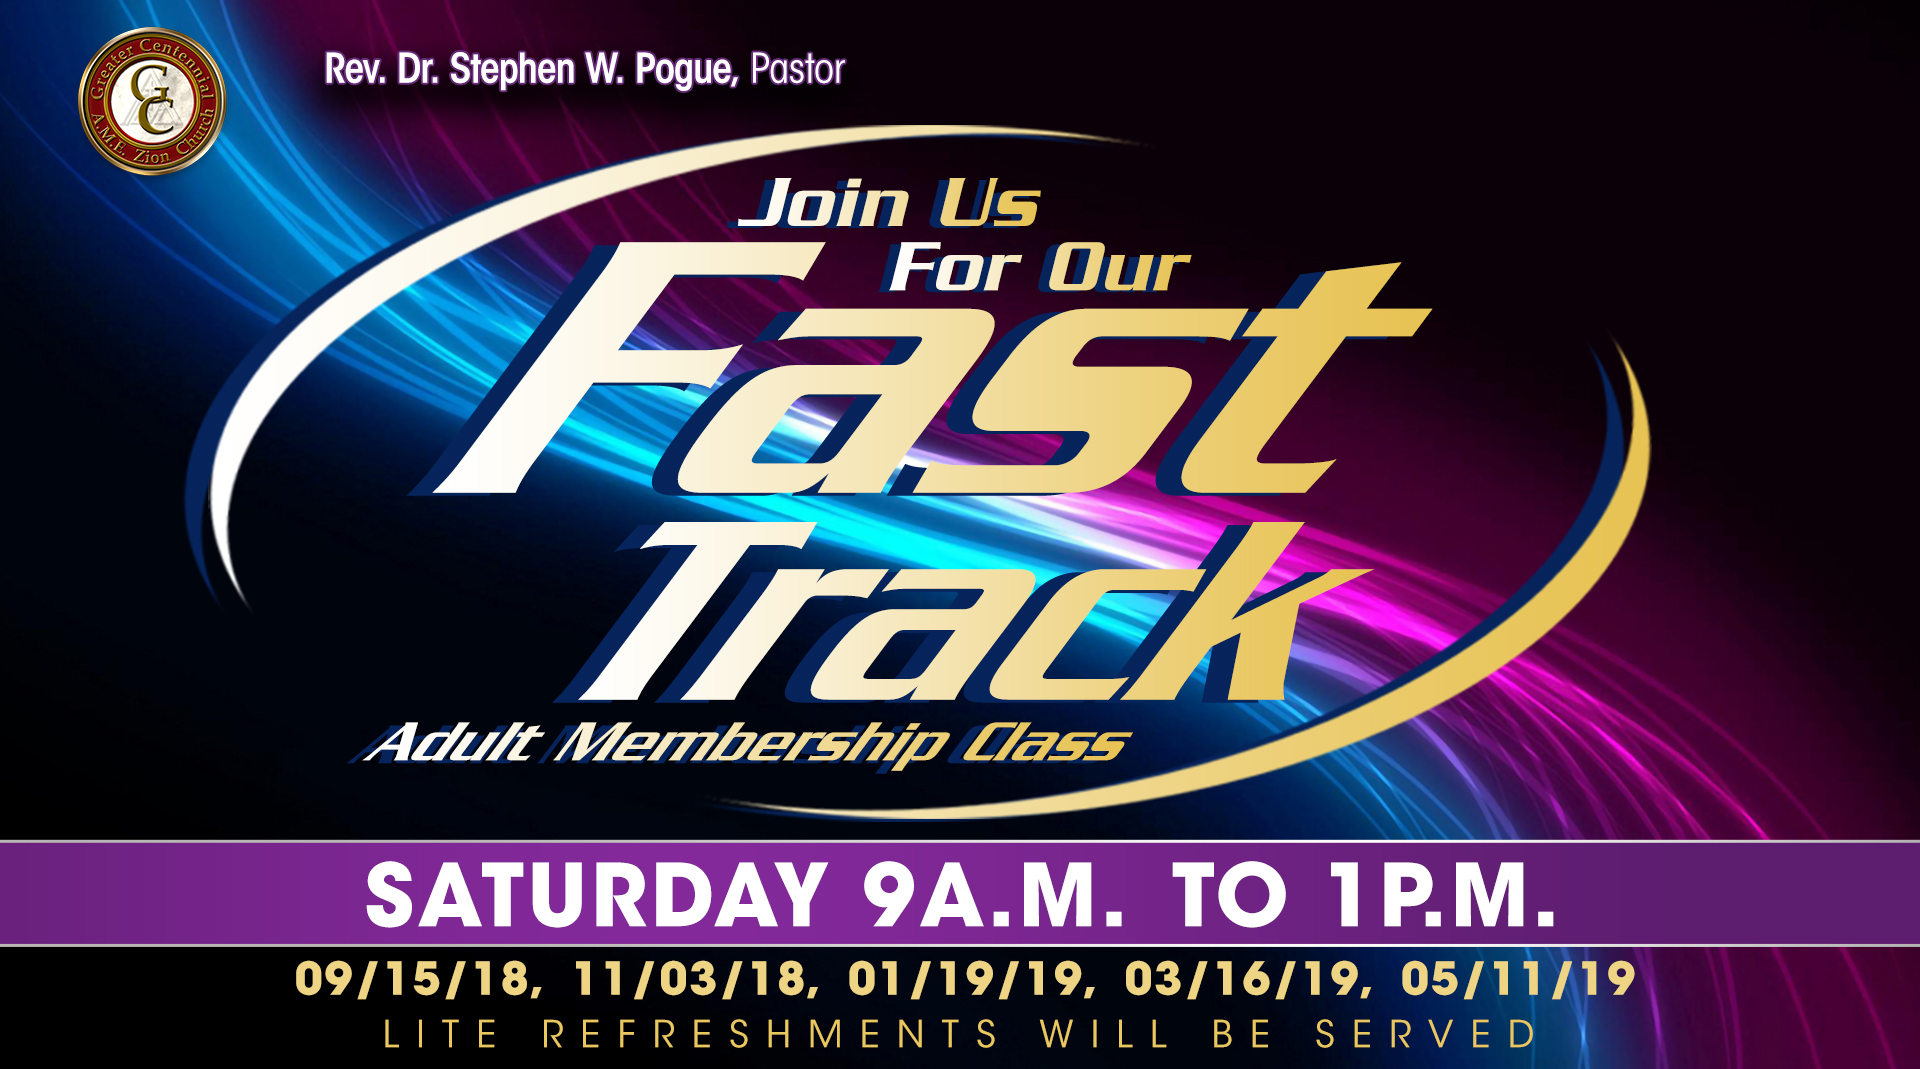 Fast TRACK REVISED WEB BANNER 1920x1070